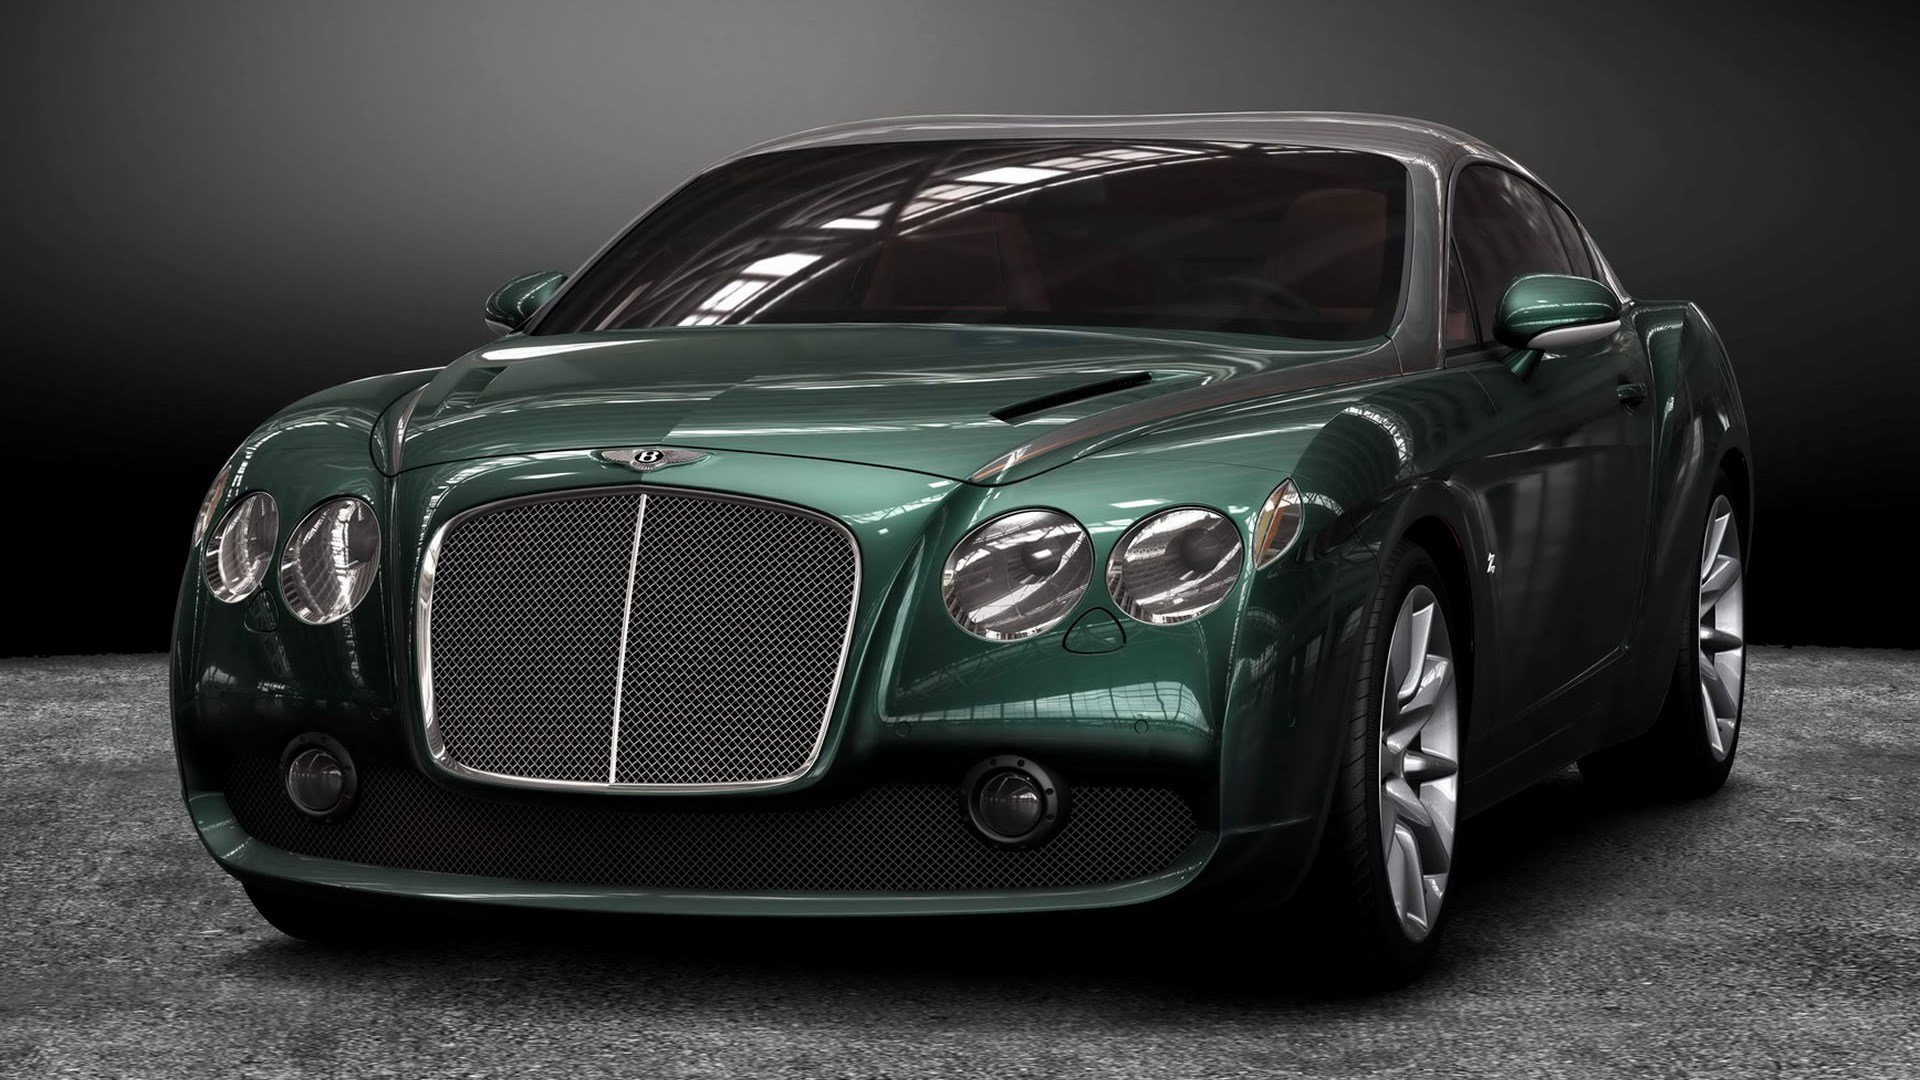 Latest Bentley Gtz 2008 Wallpapers And Hd Images Car Pixel Free Download